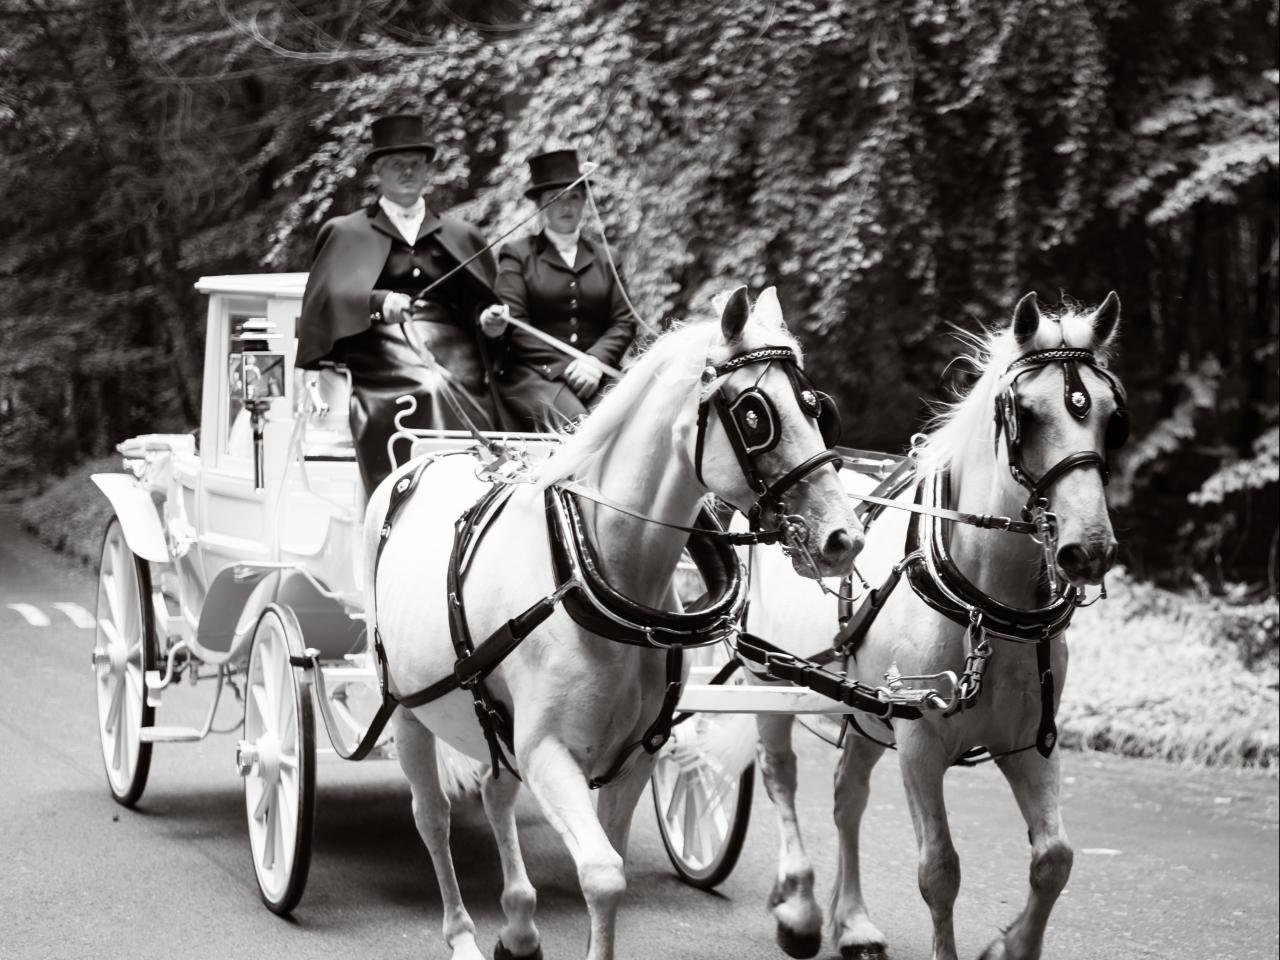 Wedding carriage at Kinitty Castle